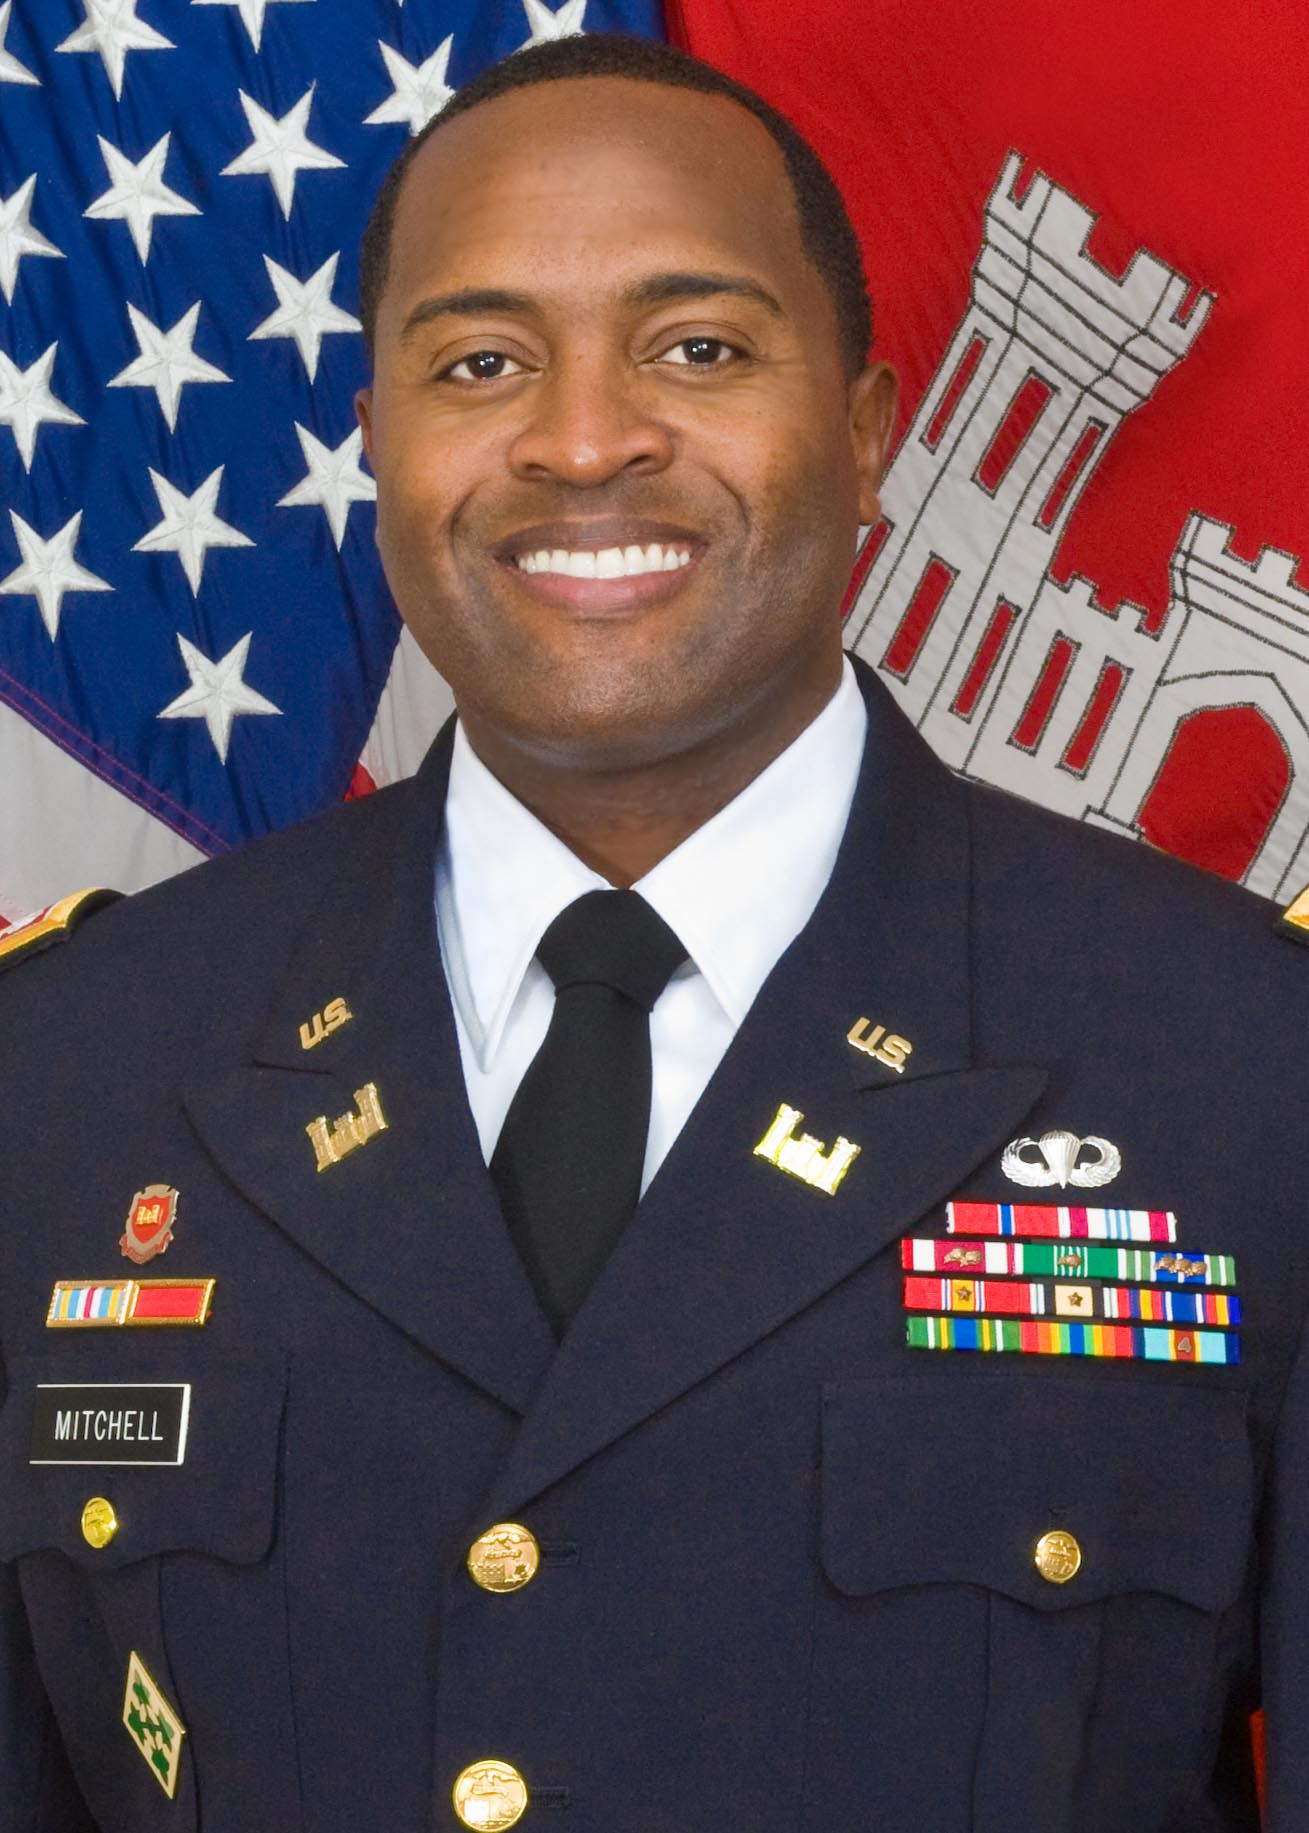 Lt. Col. Anthony P. Mitchell